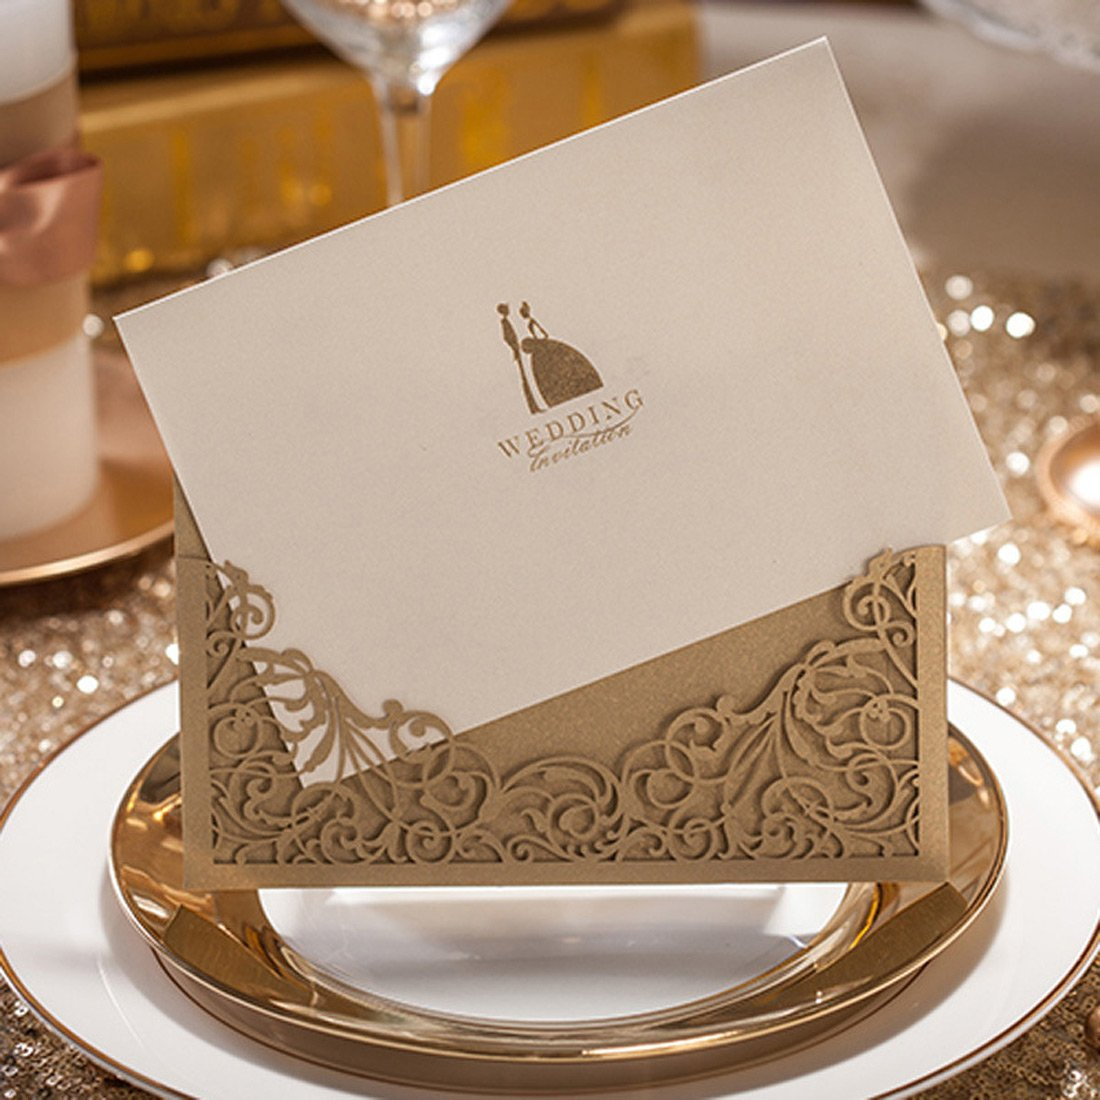 Co Provide Personalized Customized Service CW1016 WISHMADE 1 Sample WISHMADE 5 x 7 inch Gold Laser Cut Wedding Invites Shanghai Printable Bridal Shower Invitation Pocket Sleeve with Envelope Ltd.